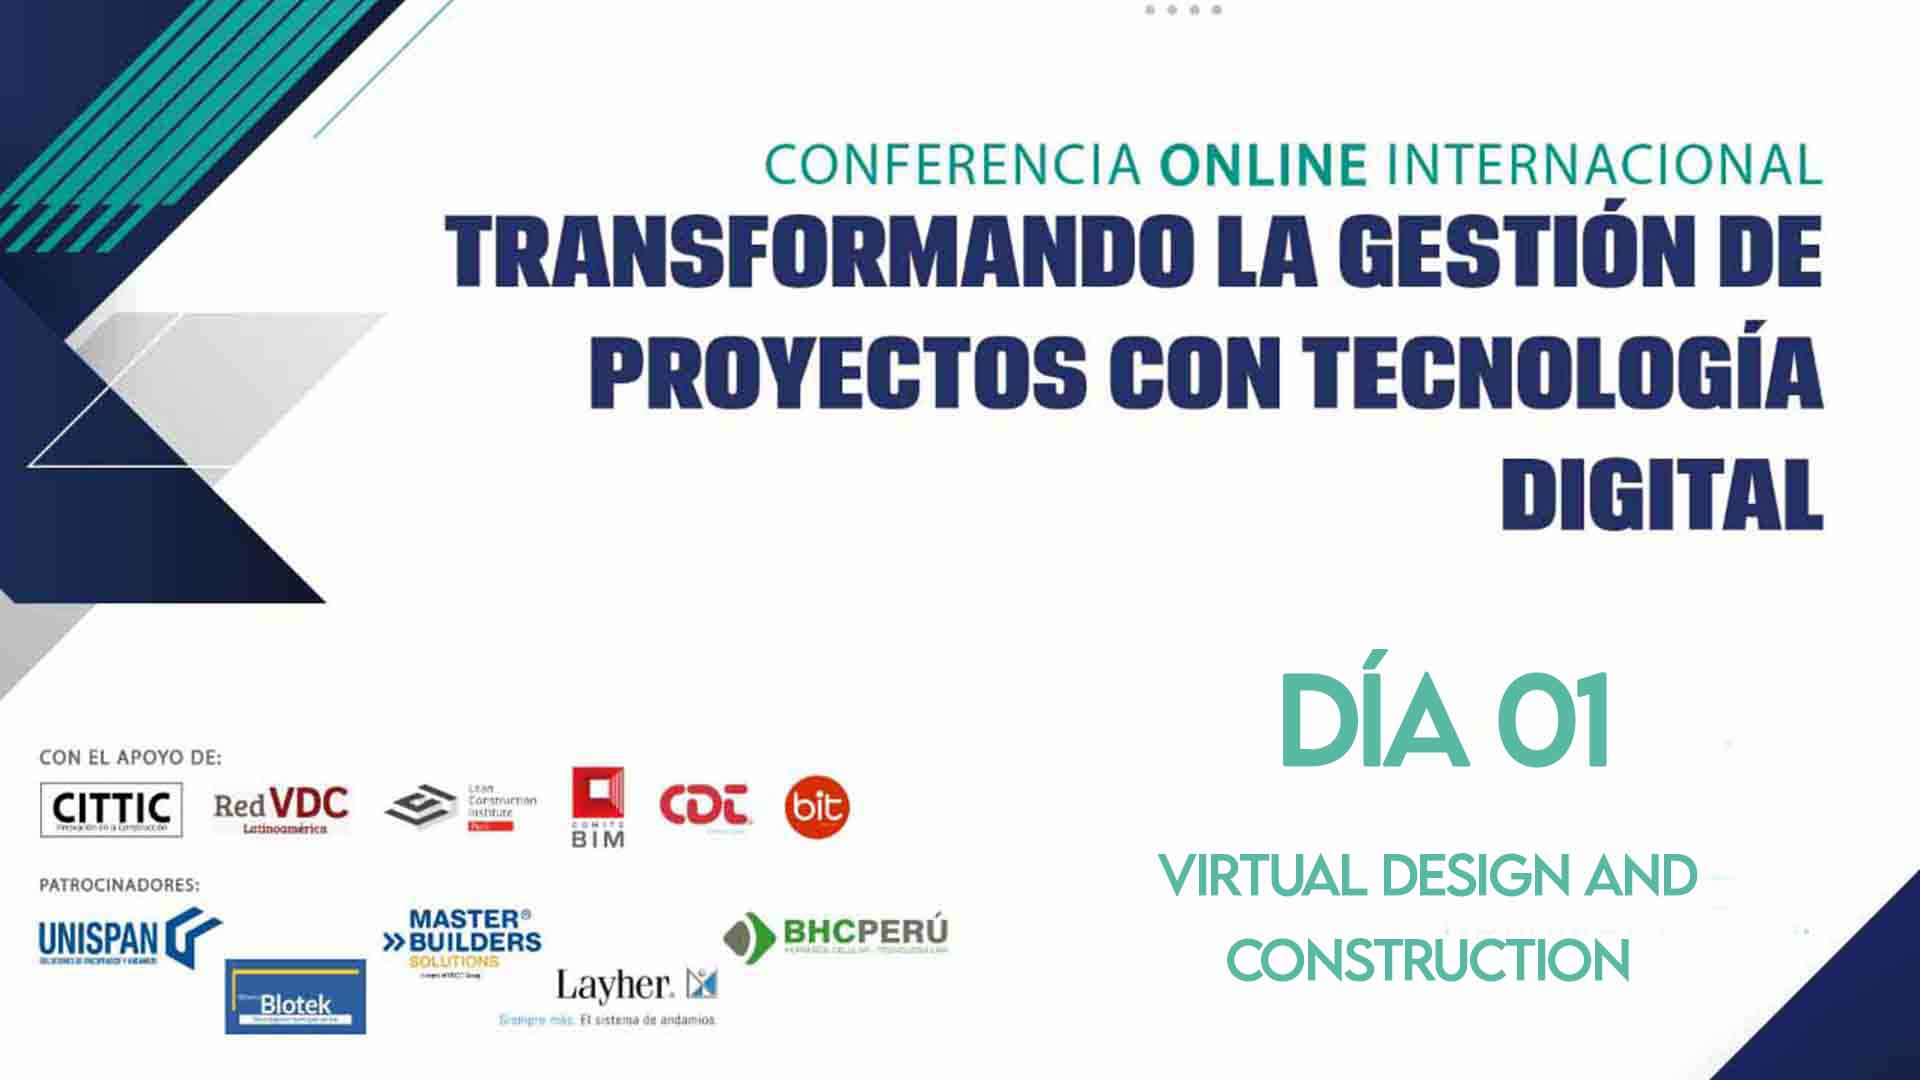 Día 01 - Virtual Design and Construction